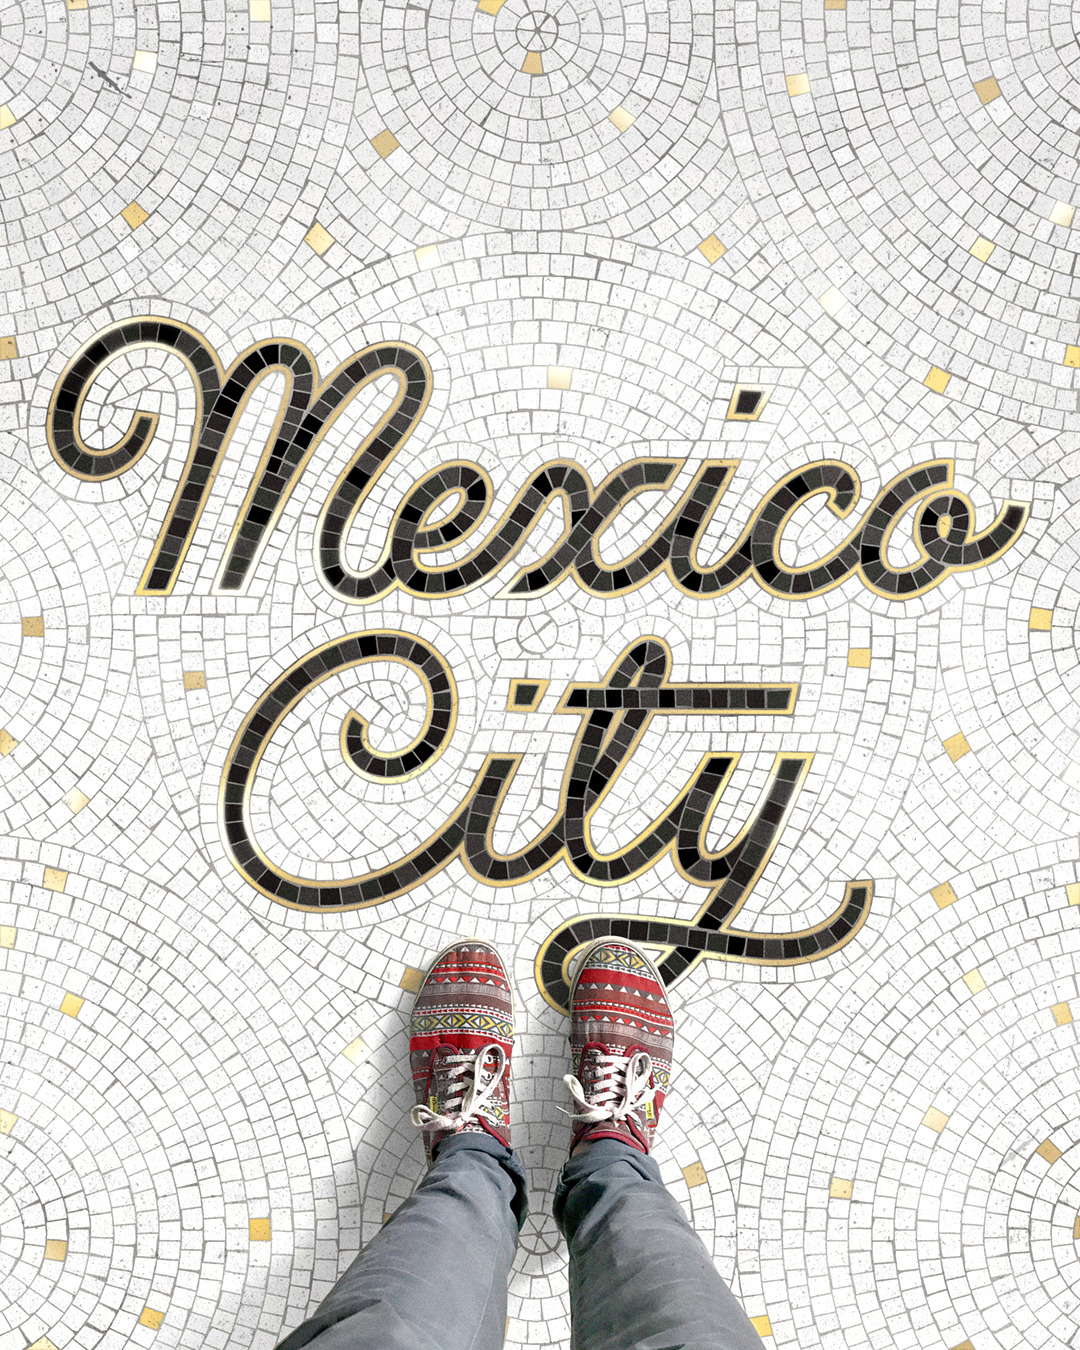 Wonderful Fictional Mosaics of Different Cities